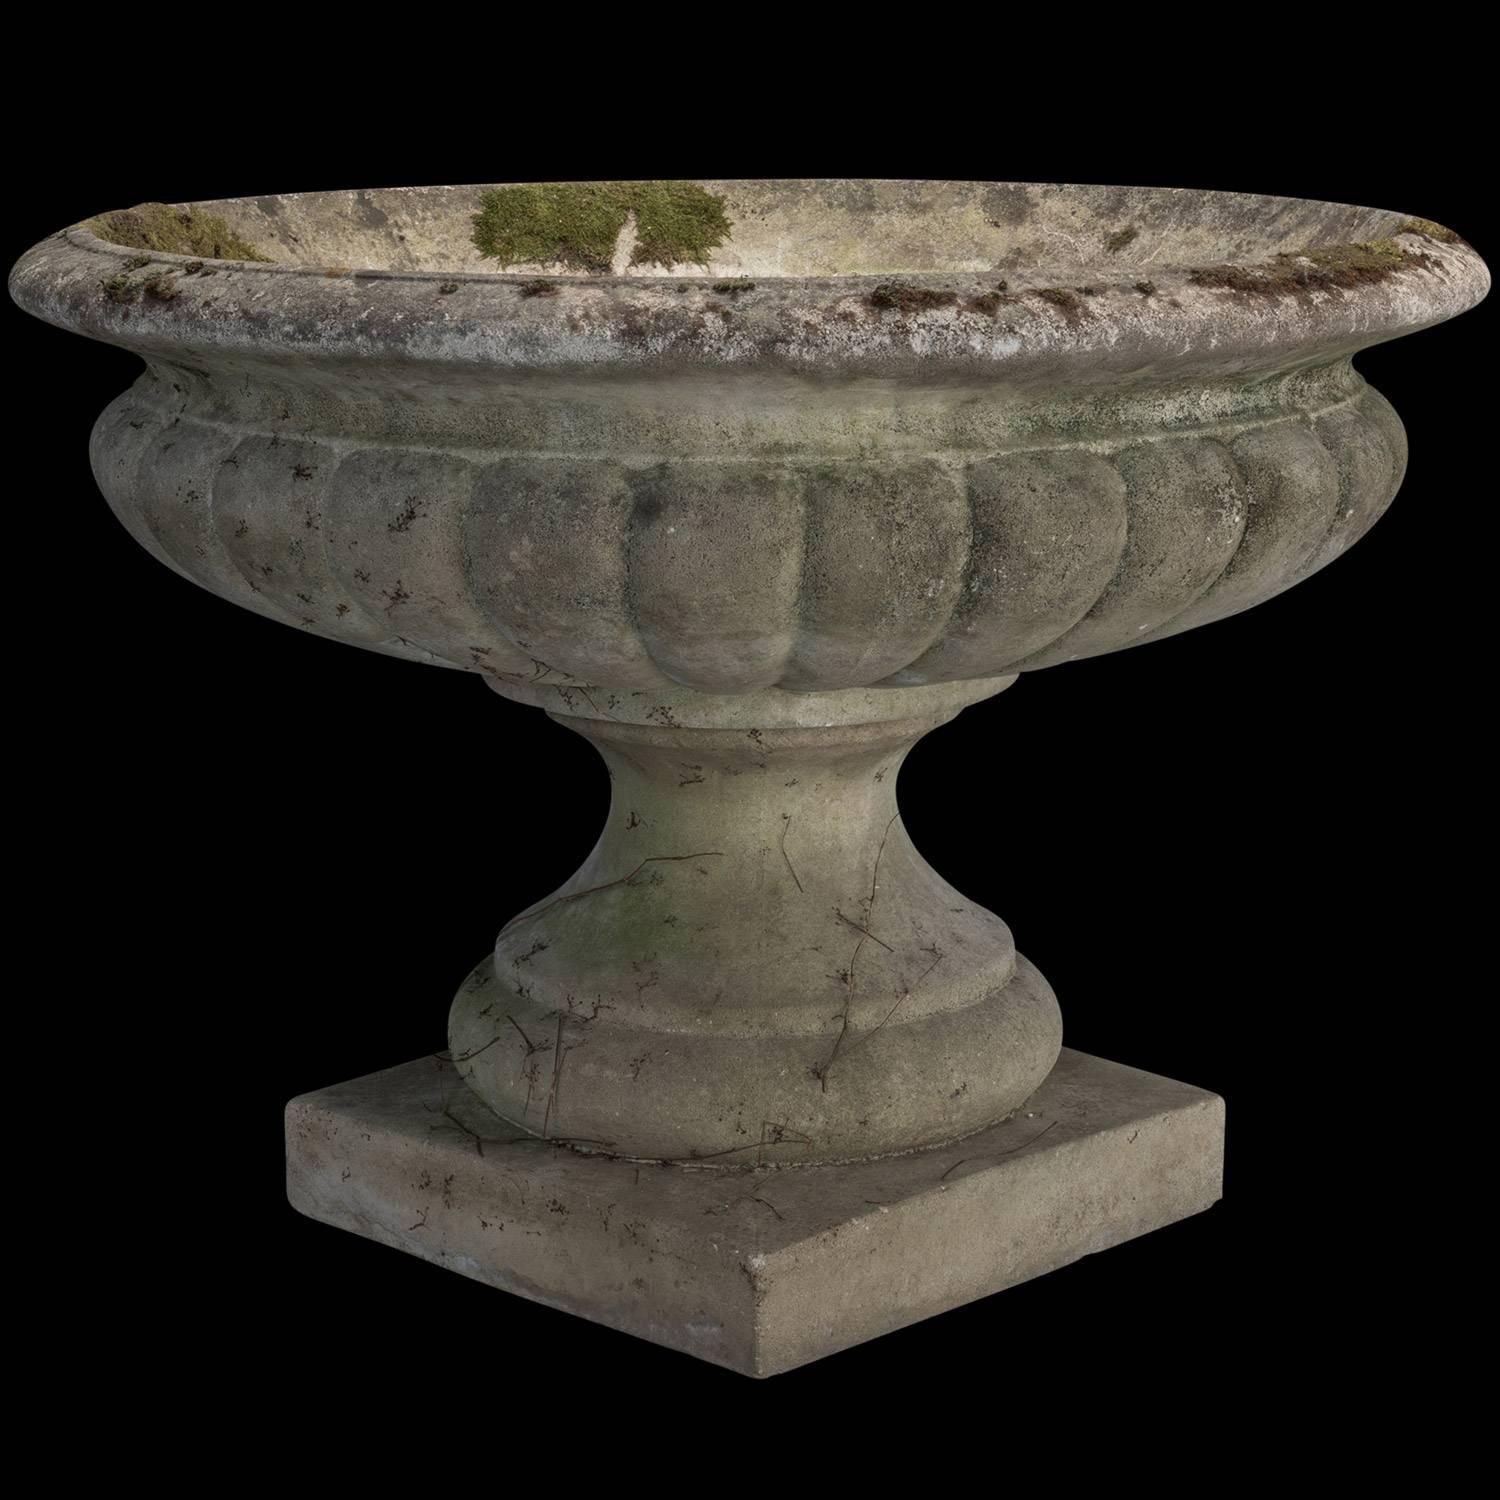 Giant Concrete Garden Urn For Sale at 1stdibs